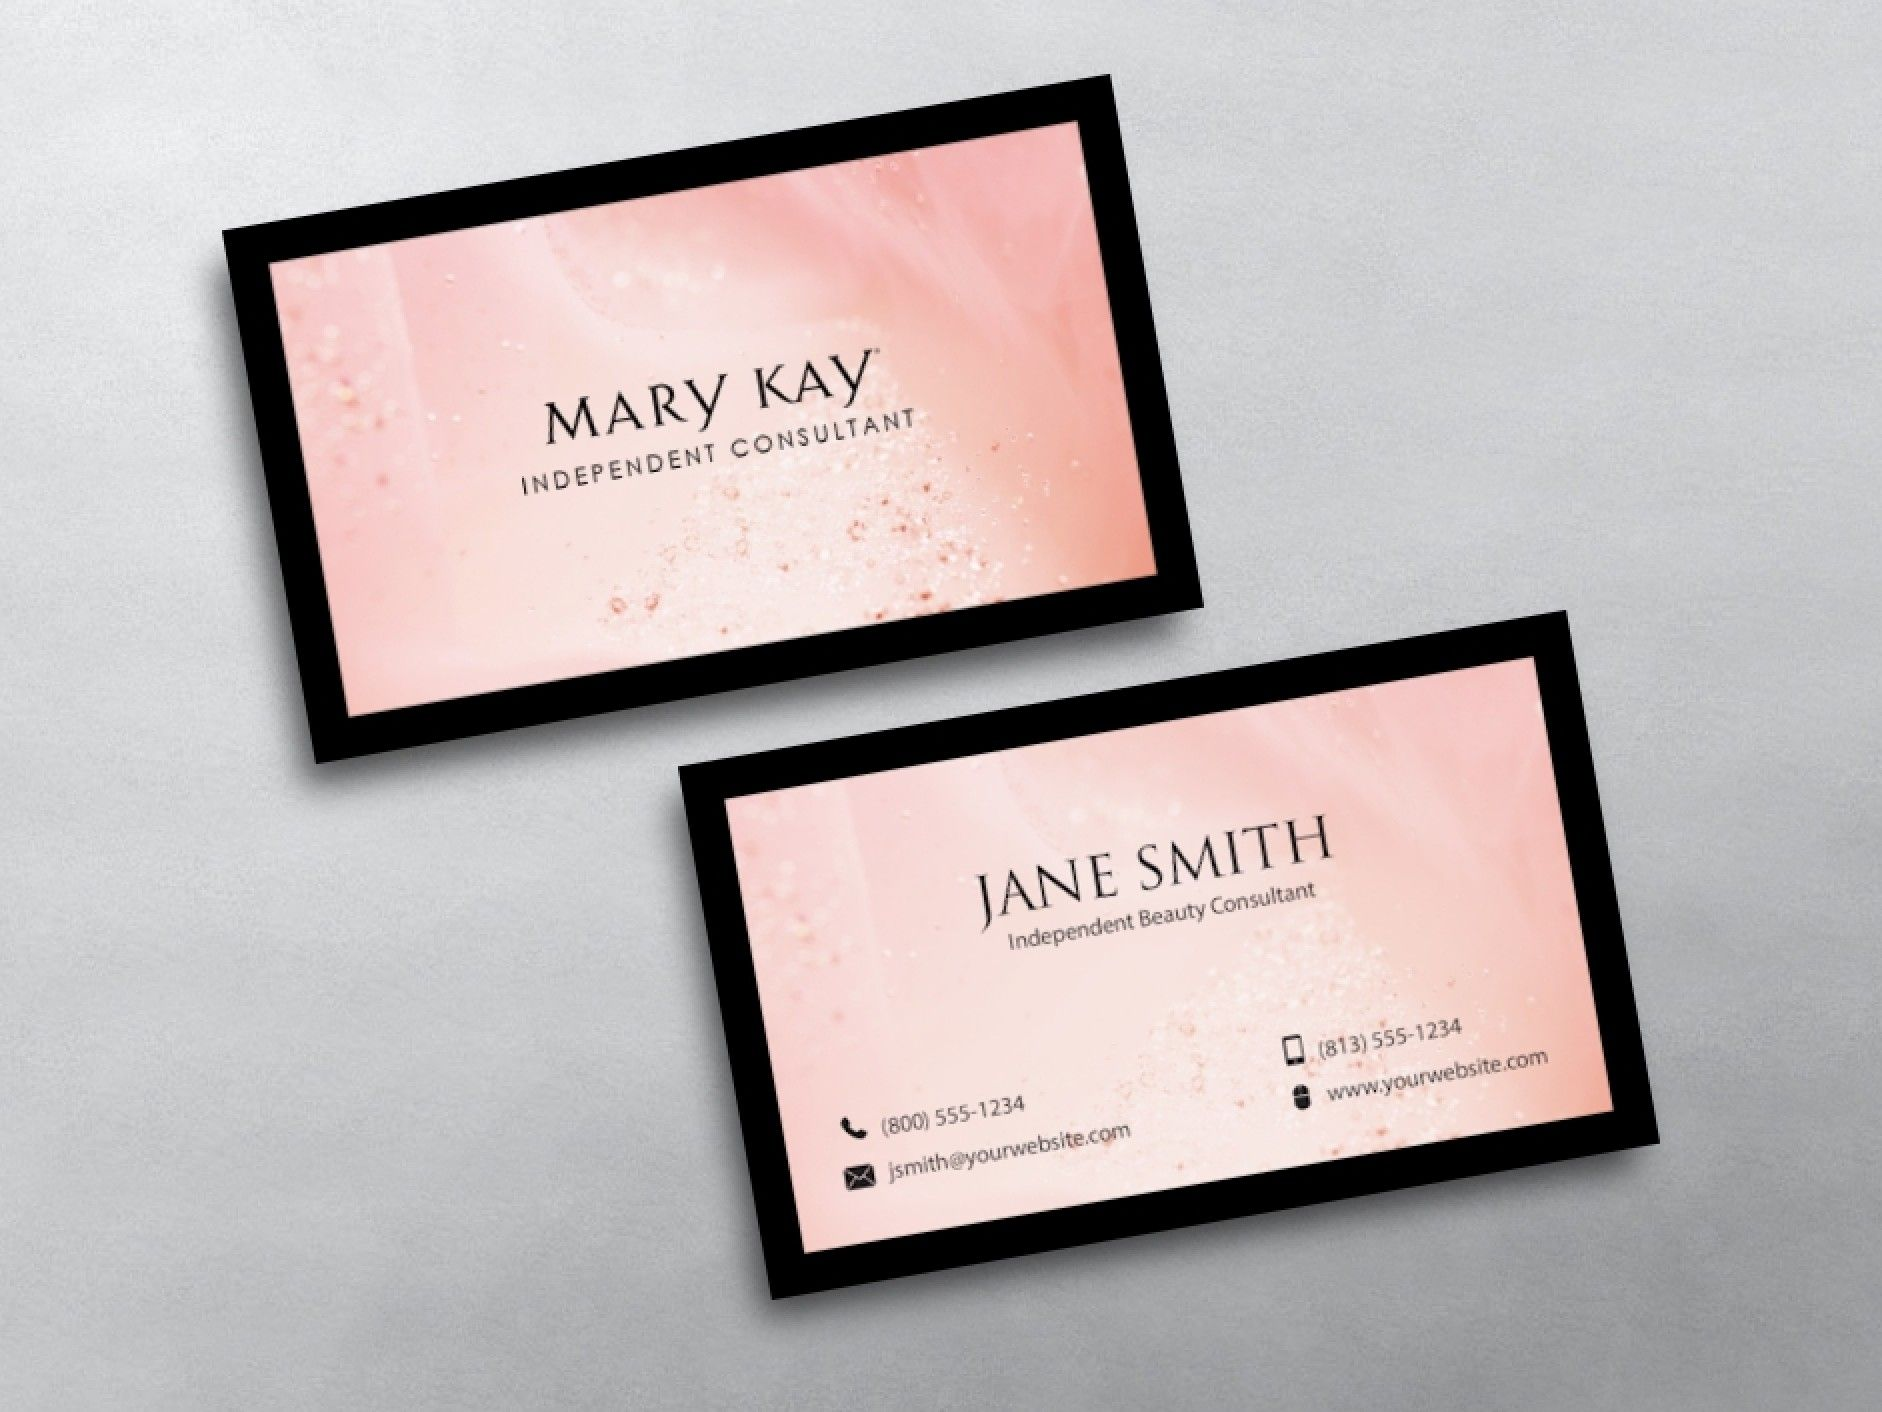 Custom Mary Kay business card printing for Mary Kay Independent ...